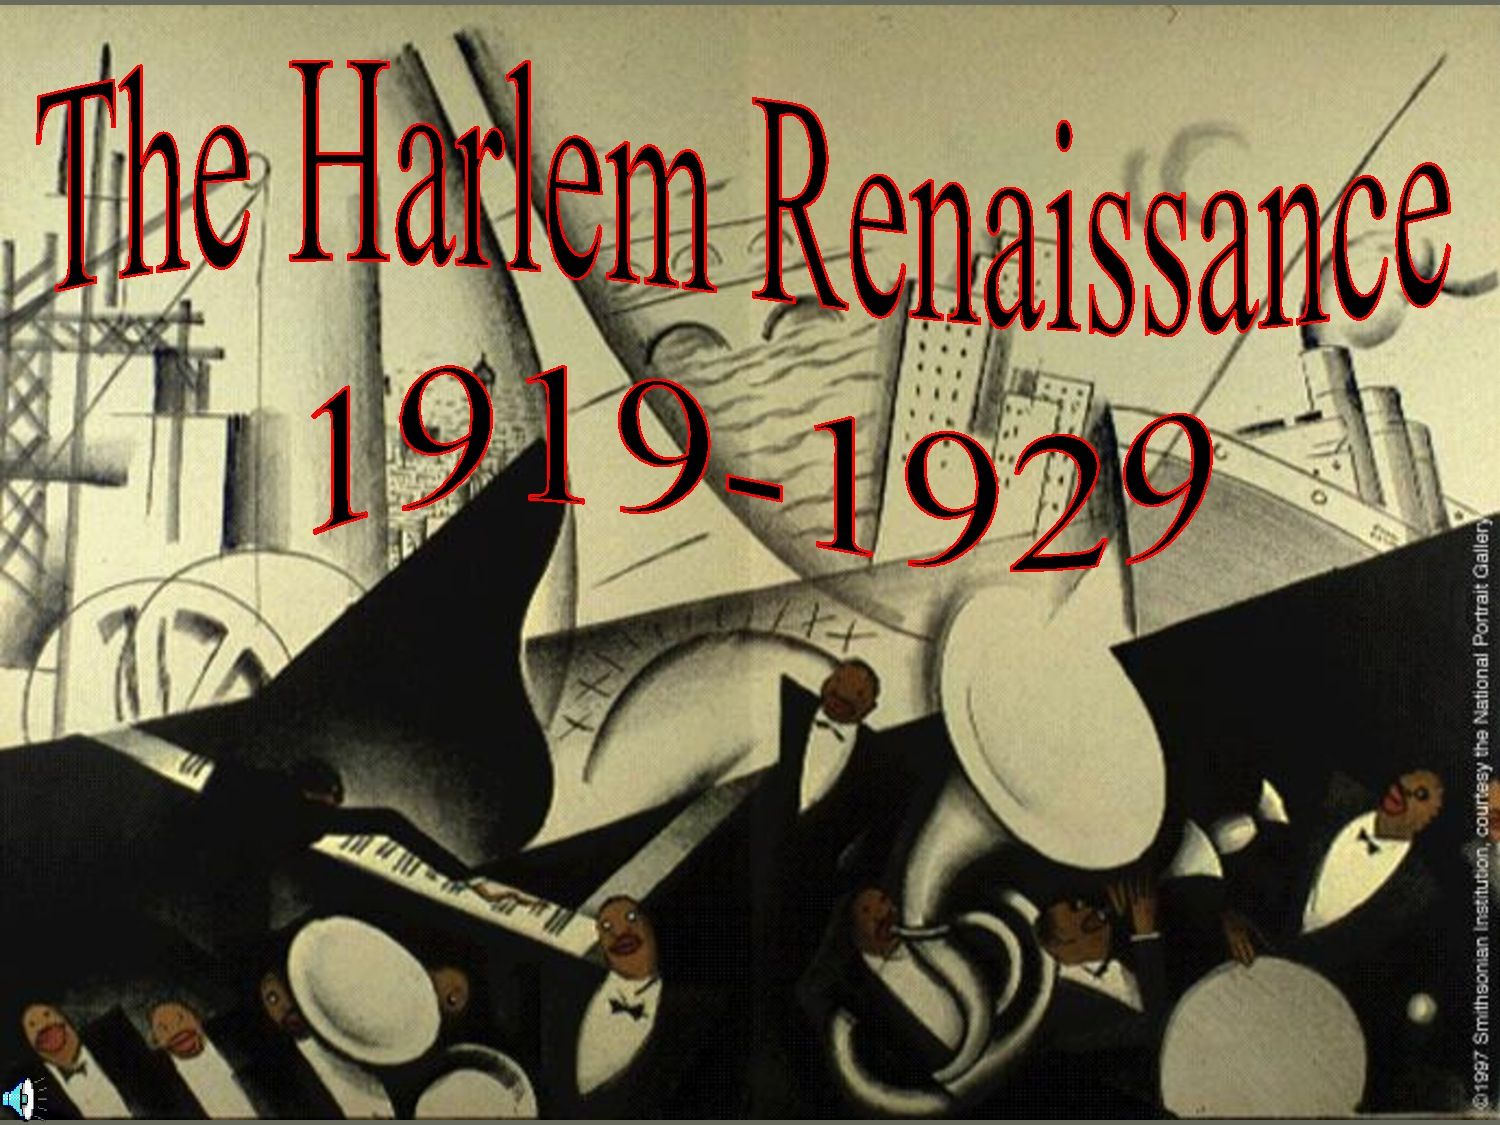 a history of the harlem renaissance Harlem renaissance ushered in new era visiting assistant professor of history at pennsylvania's harlem got so much attention in part because new.